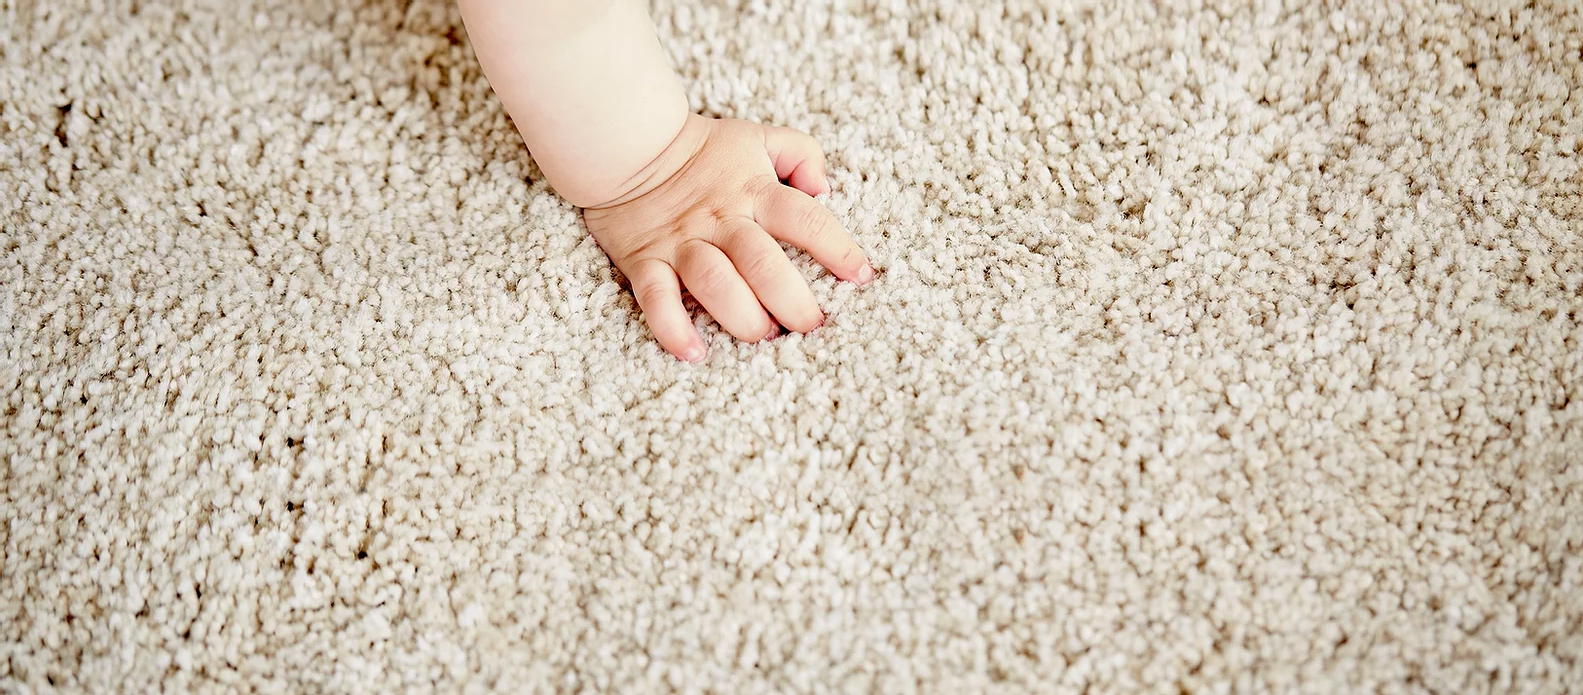 carpet with baby hand